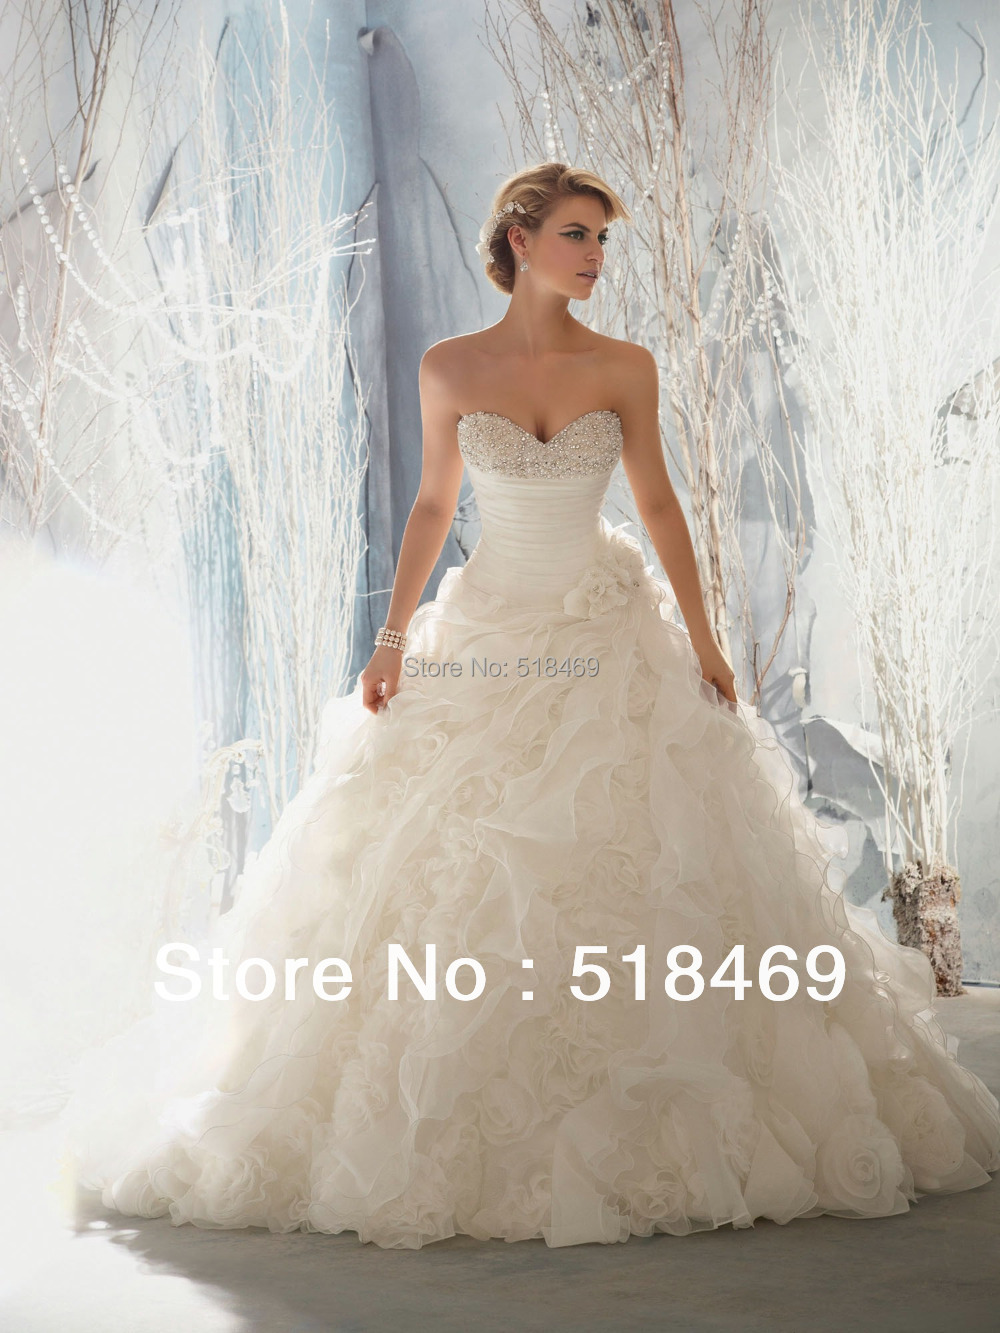 Ball Gown Wedding Dresses With Train : Train organza wedding dresses bridal gowns with crystals and flower